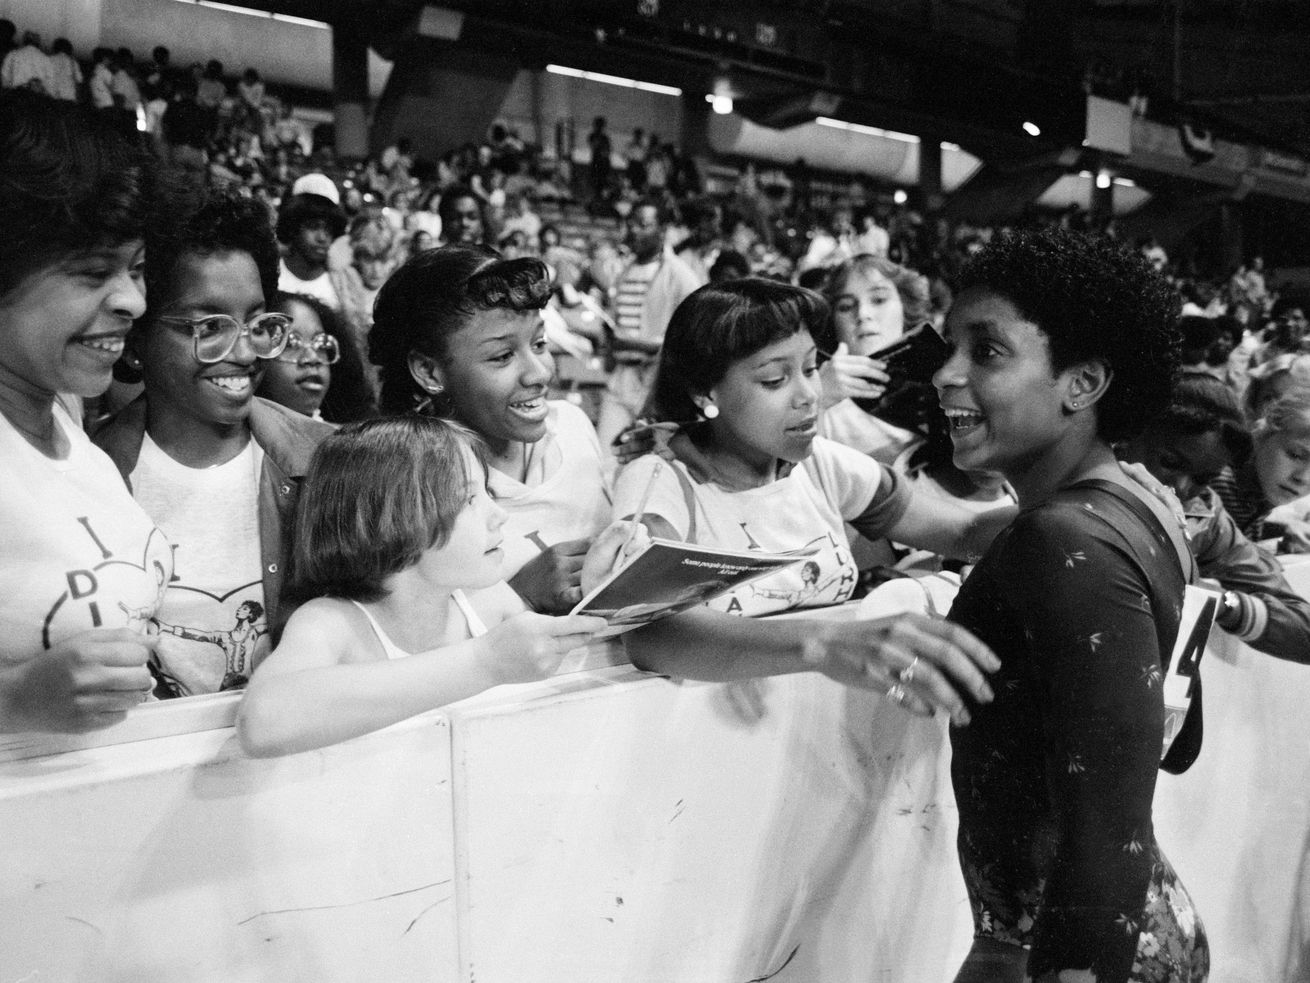 Dianne Durham, the first Black woman to win a USA Gymnastics national championship who later became a gymnastics instructor in Chicago, will be inducted into the USA Gymnastics Hall of Fame.